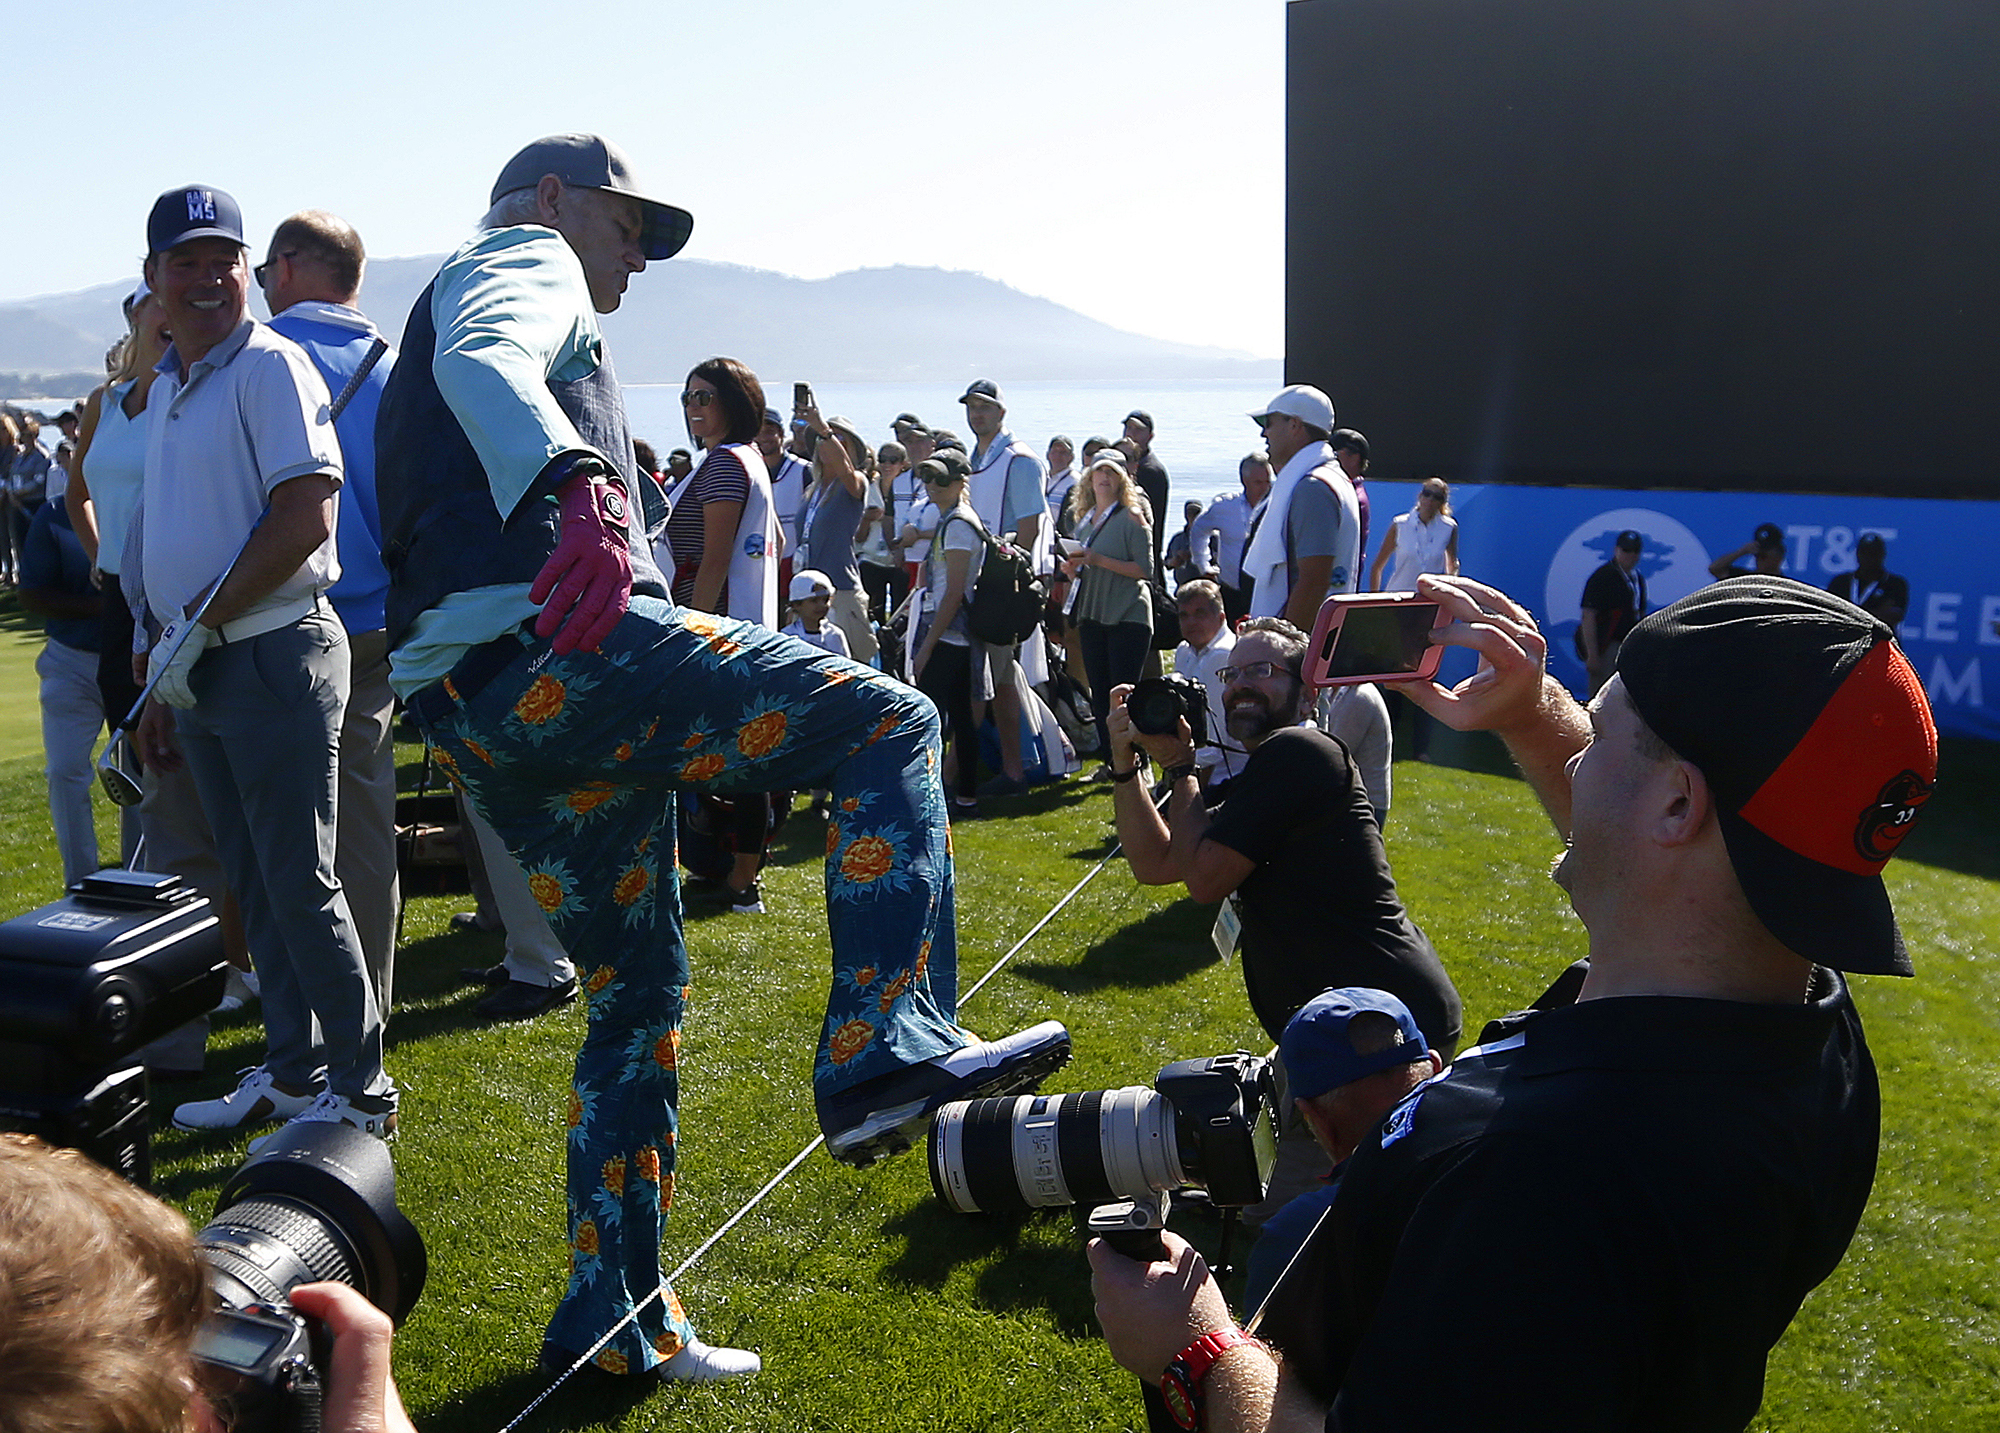 Rory McIlroy five putts after near eagle at Pebble Beach